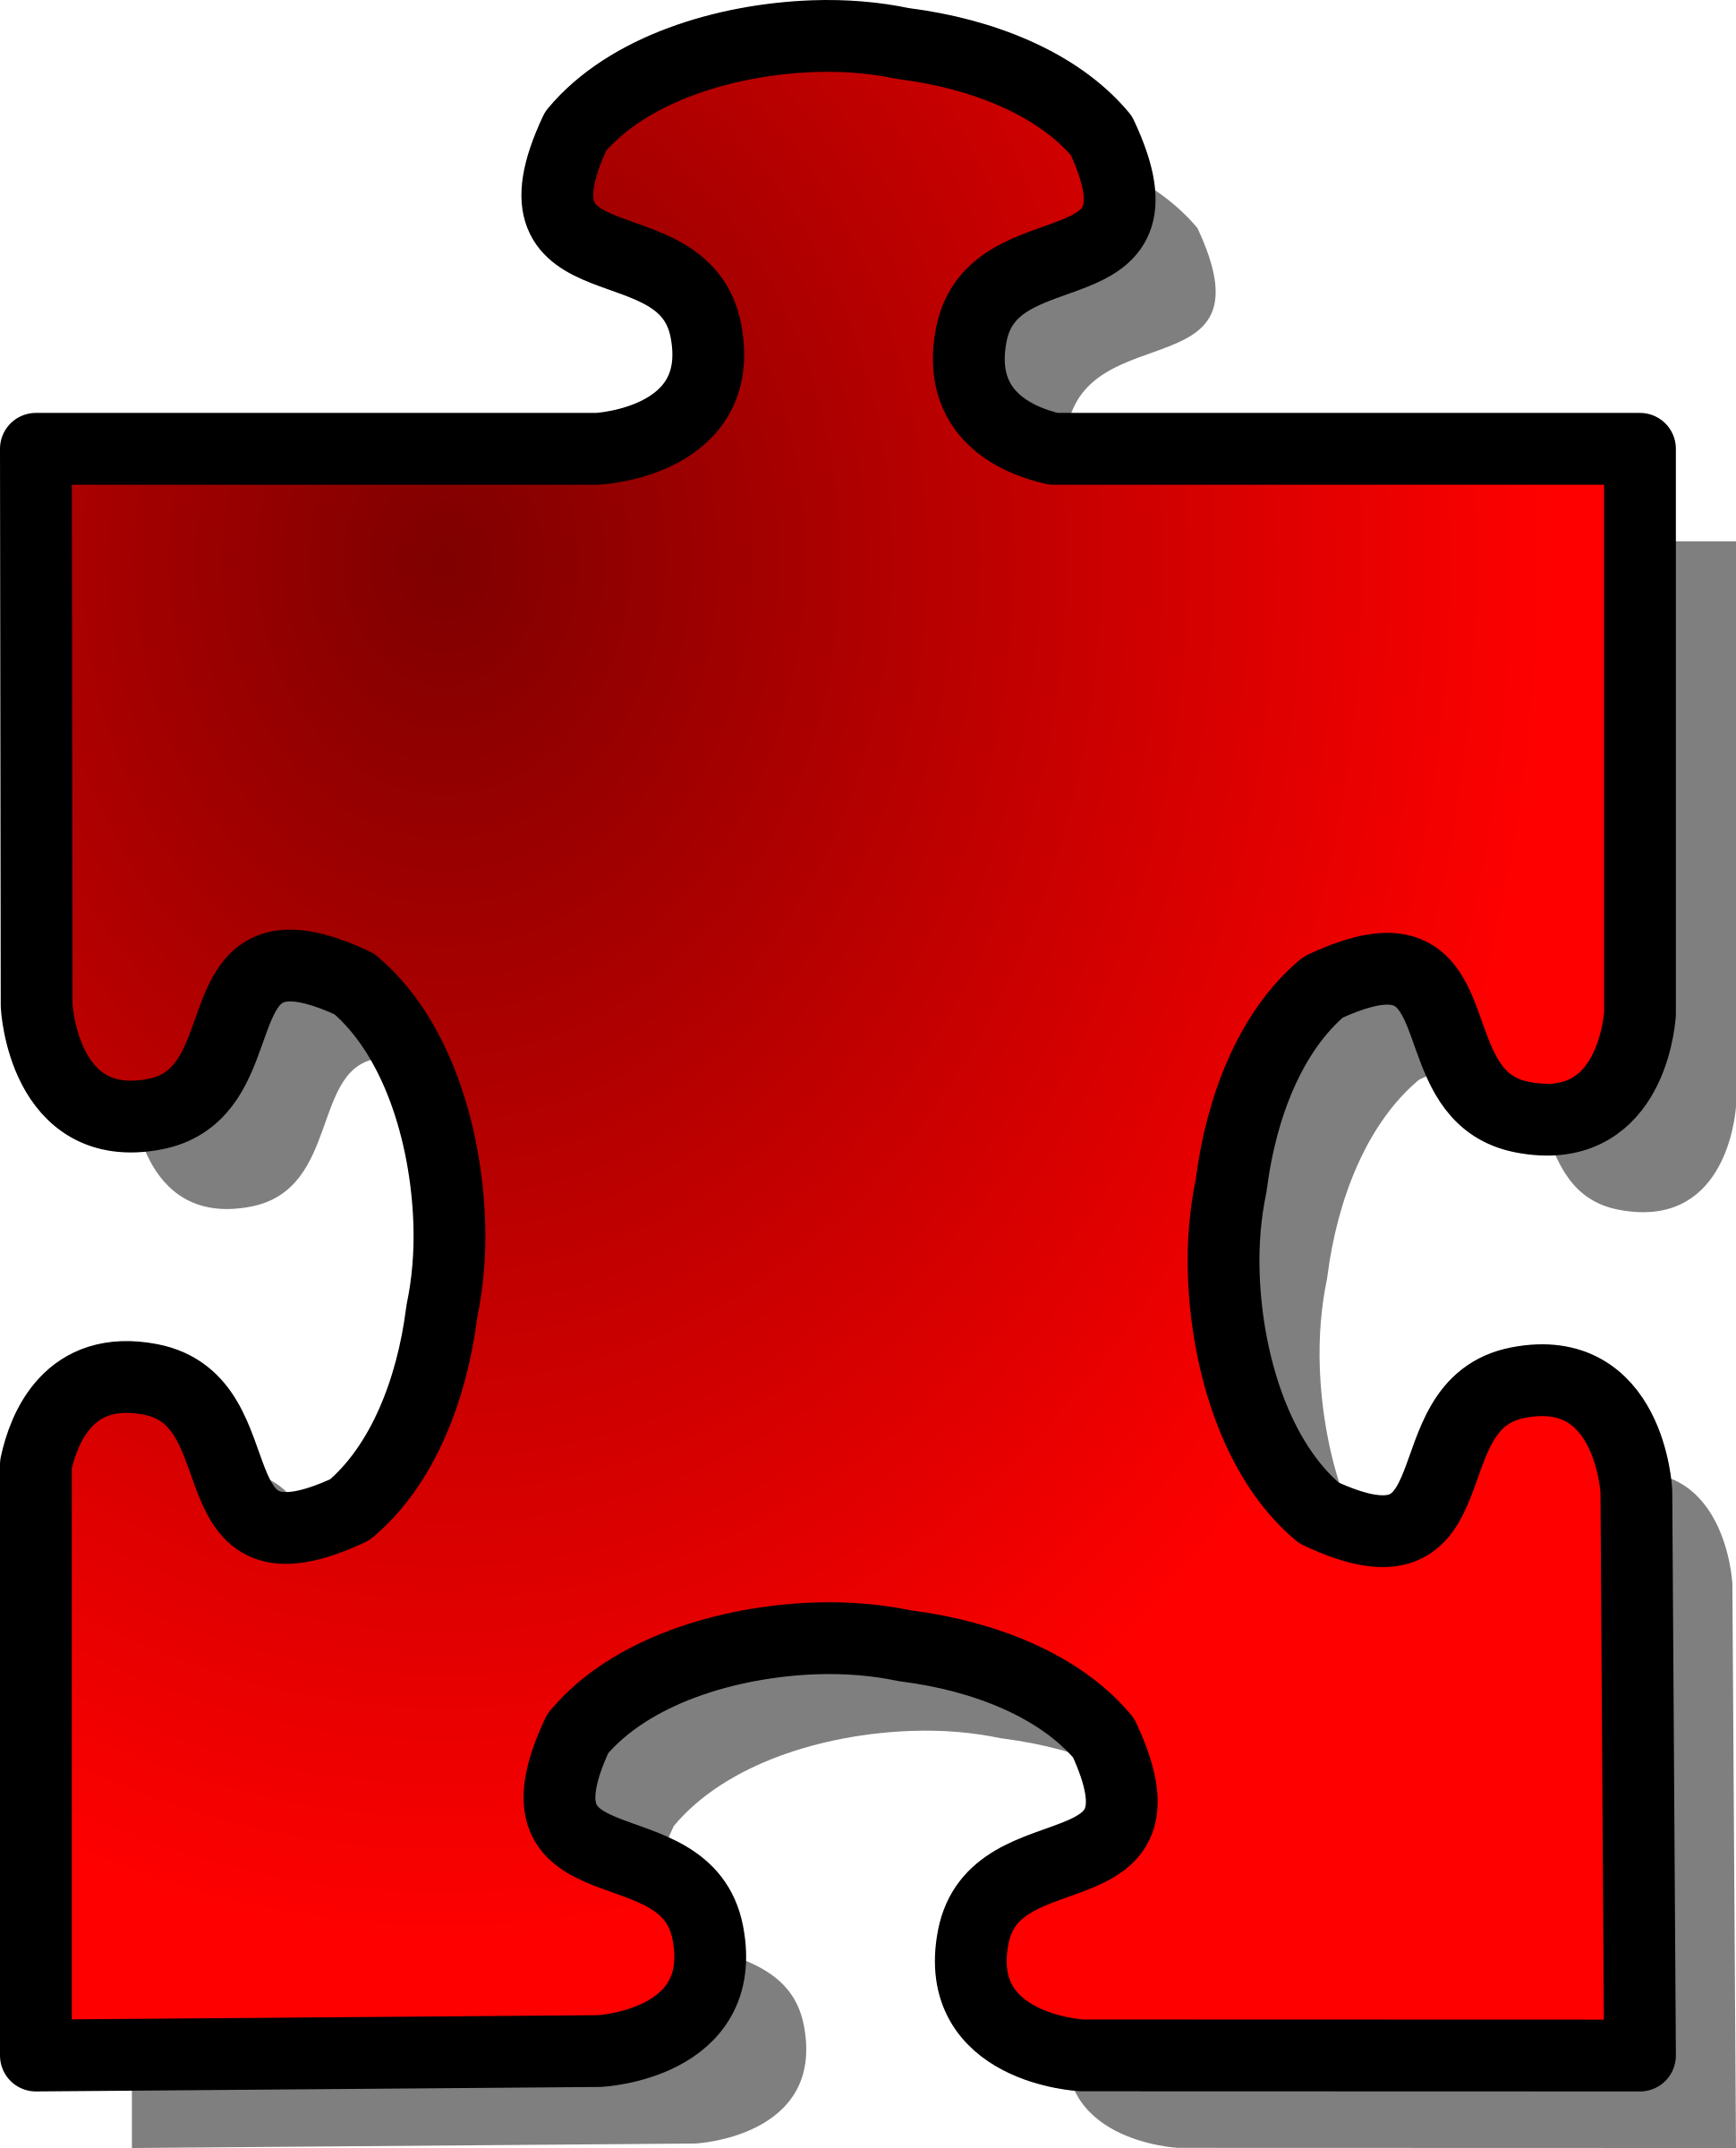 Red Jigsaw piece 13 by nicubunu